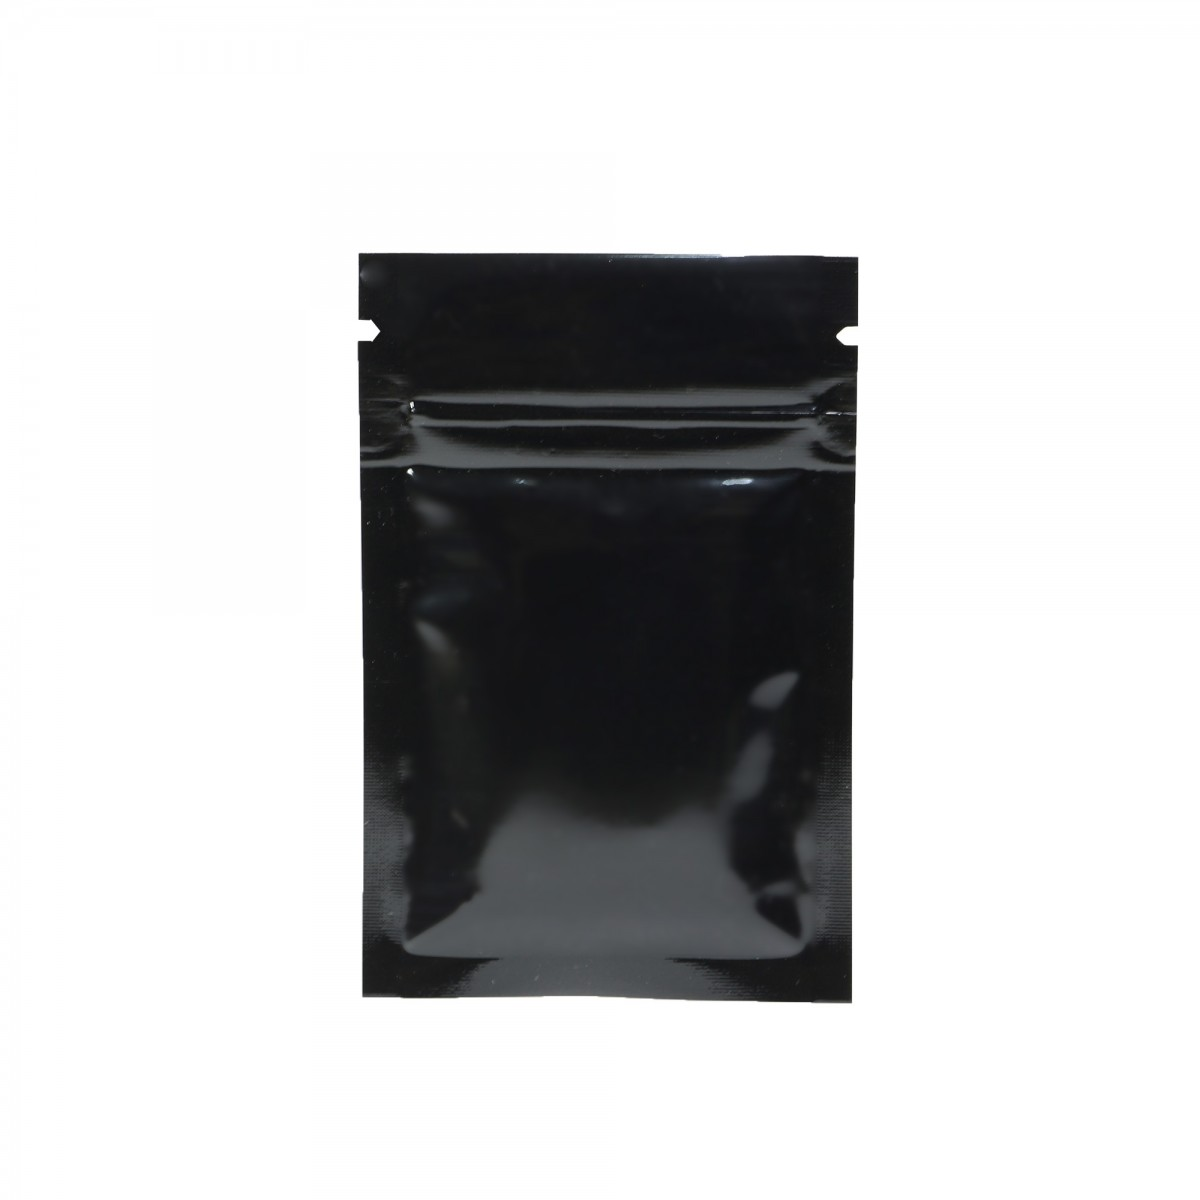 black shiny metallic mylar ziplock bags 6 cm x 9 cm 2 4 inches x 3 5 inches 500 bags lot. Black Bedroom Furniture Sets. Home Design Ideas